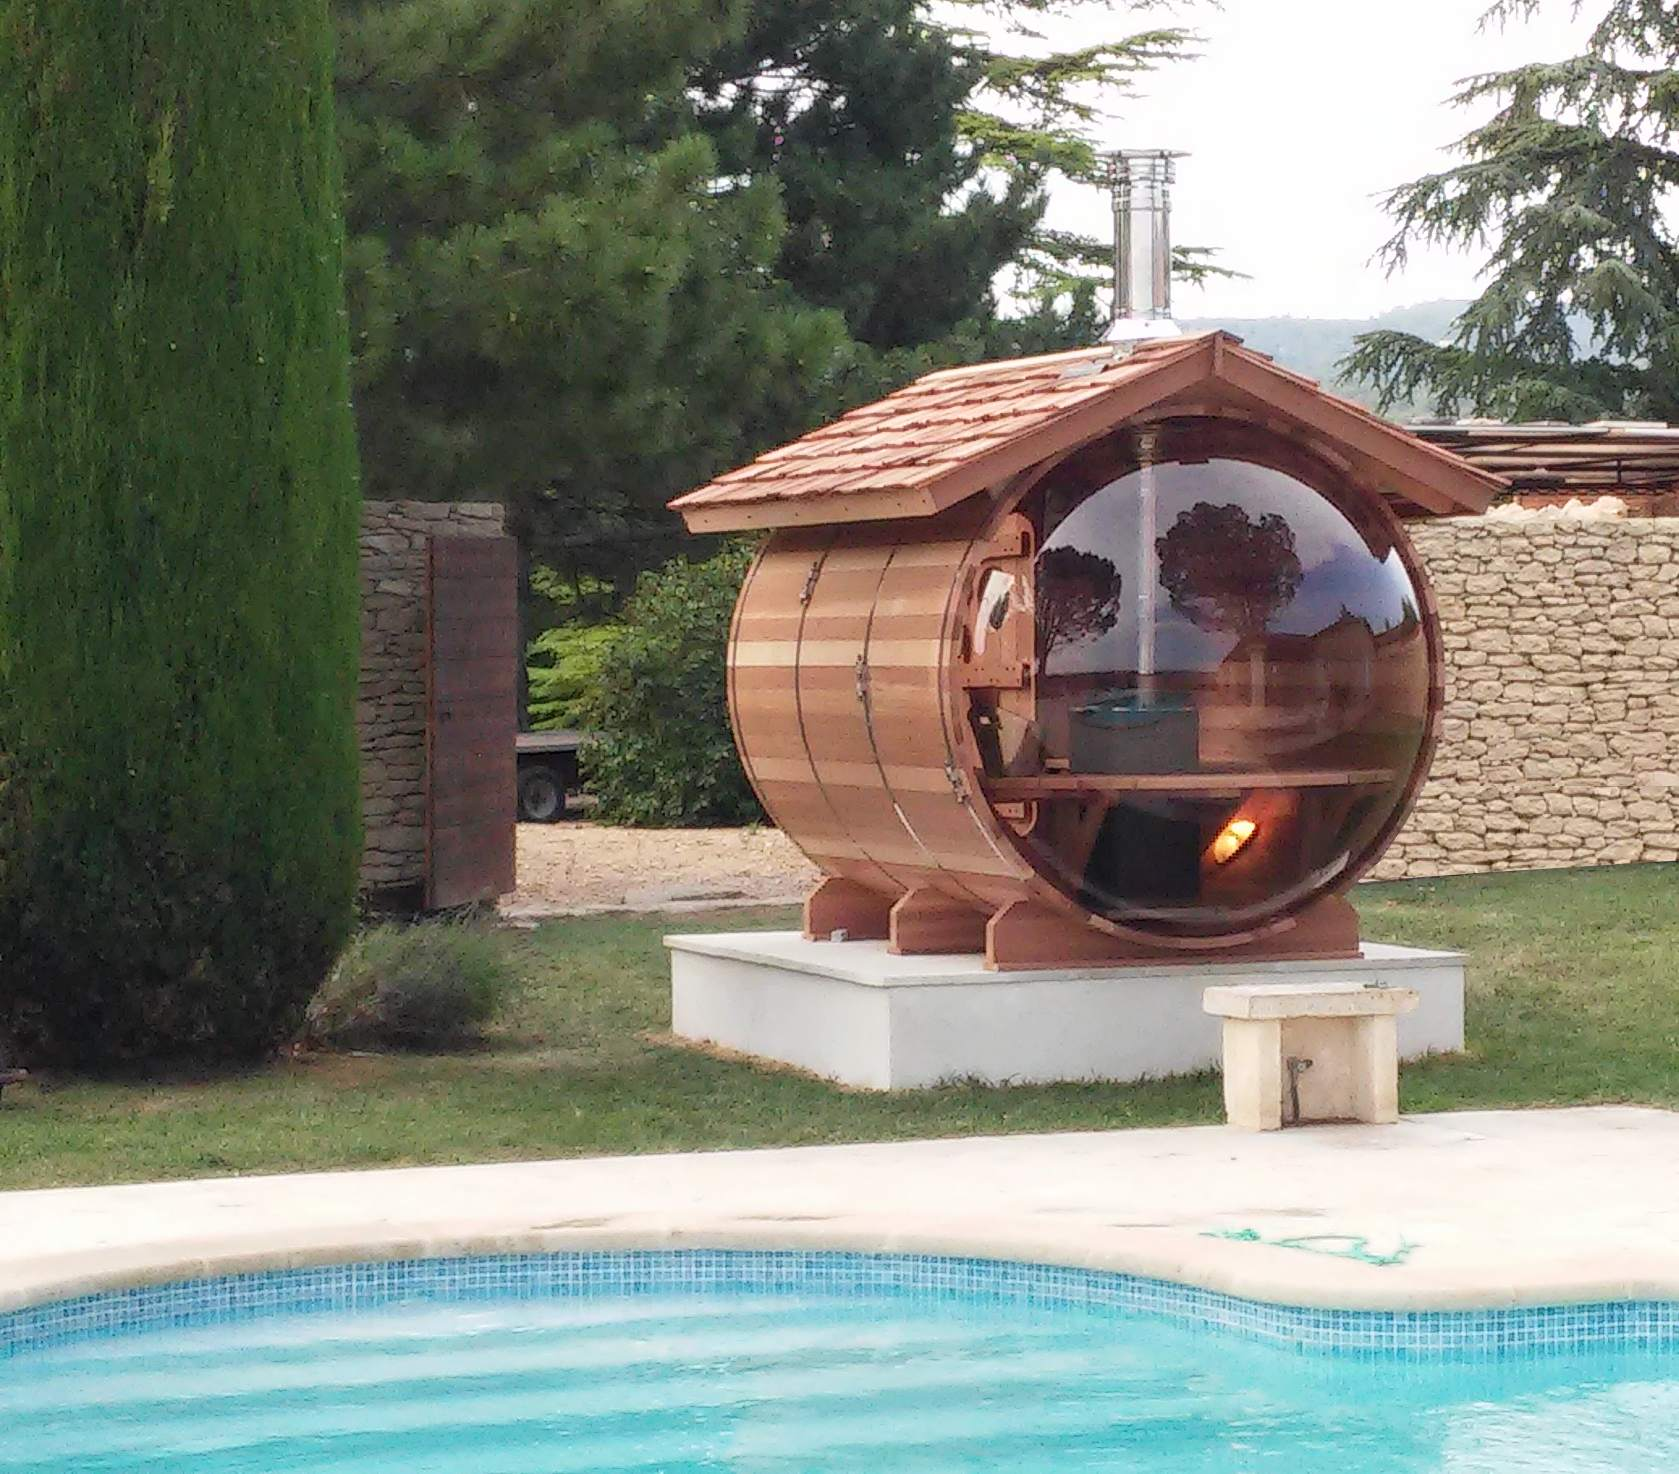 Wood-heated bubble sauna with a its roof covered with red cedar shingles